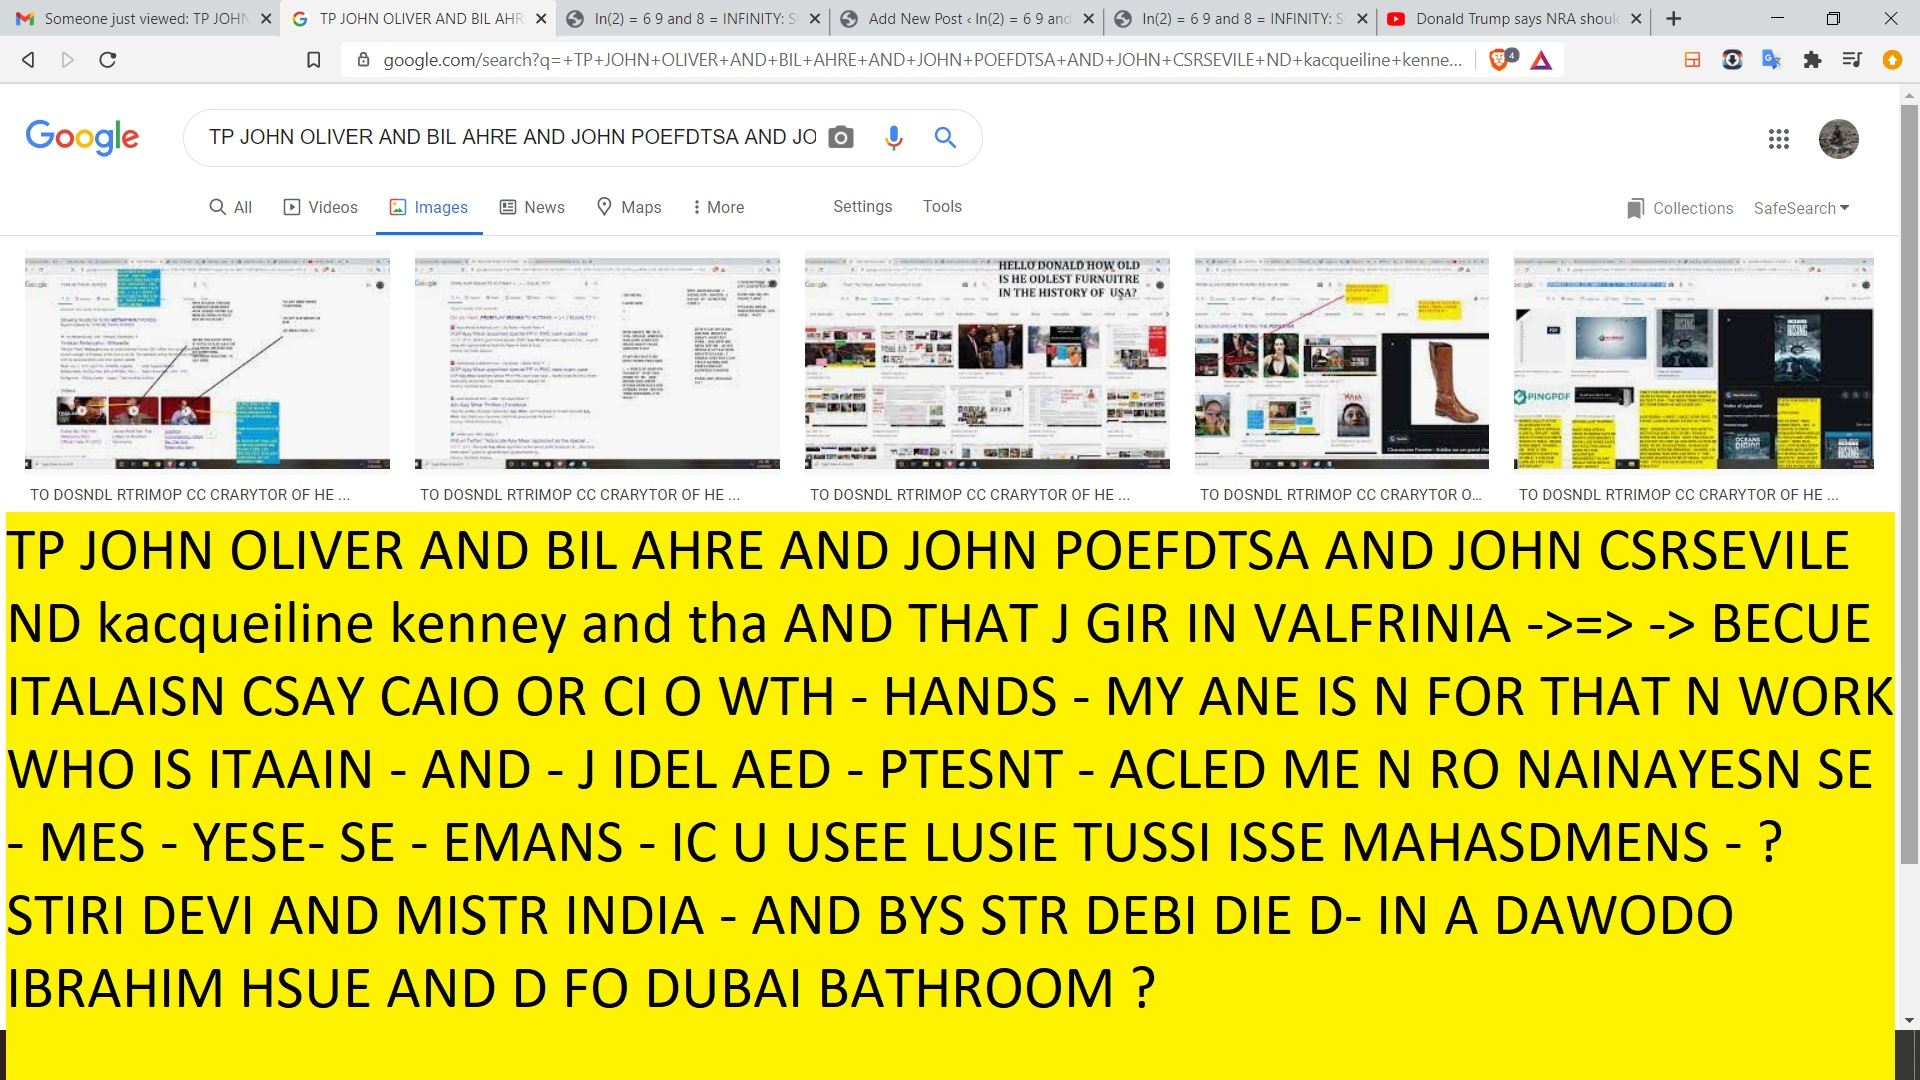 TP JOHN OLIVER AND BIL AHRE AND JOHN POEFDTSA AND JOHN CSRSEVILE ND kacqueiline kenney and tha AND THAT J GIR IN VALFRINIA ->=> -> BECUE ITALAISN CSAY CAIO OR CI O WTH - HANDS - MY ANE IS N FOR THAT N WORK WHO IS ITAAIN - AND - J IDEL AED - PTESNT - ACLED ME N RO NAINAYESN SE - MES - YESE- SE - EMANS - IC U USEE LUSIE TUSSI ISSE MAHASDMENS - ? STIRI DEVI AND MISTR INDIA - AND BYS STR DEBI DIE D- IN A DAWODO IBRAHIM HSUE AND D FO DUBAI BATHROOM ?